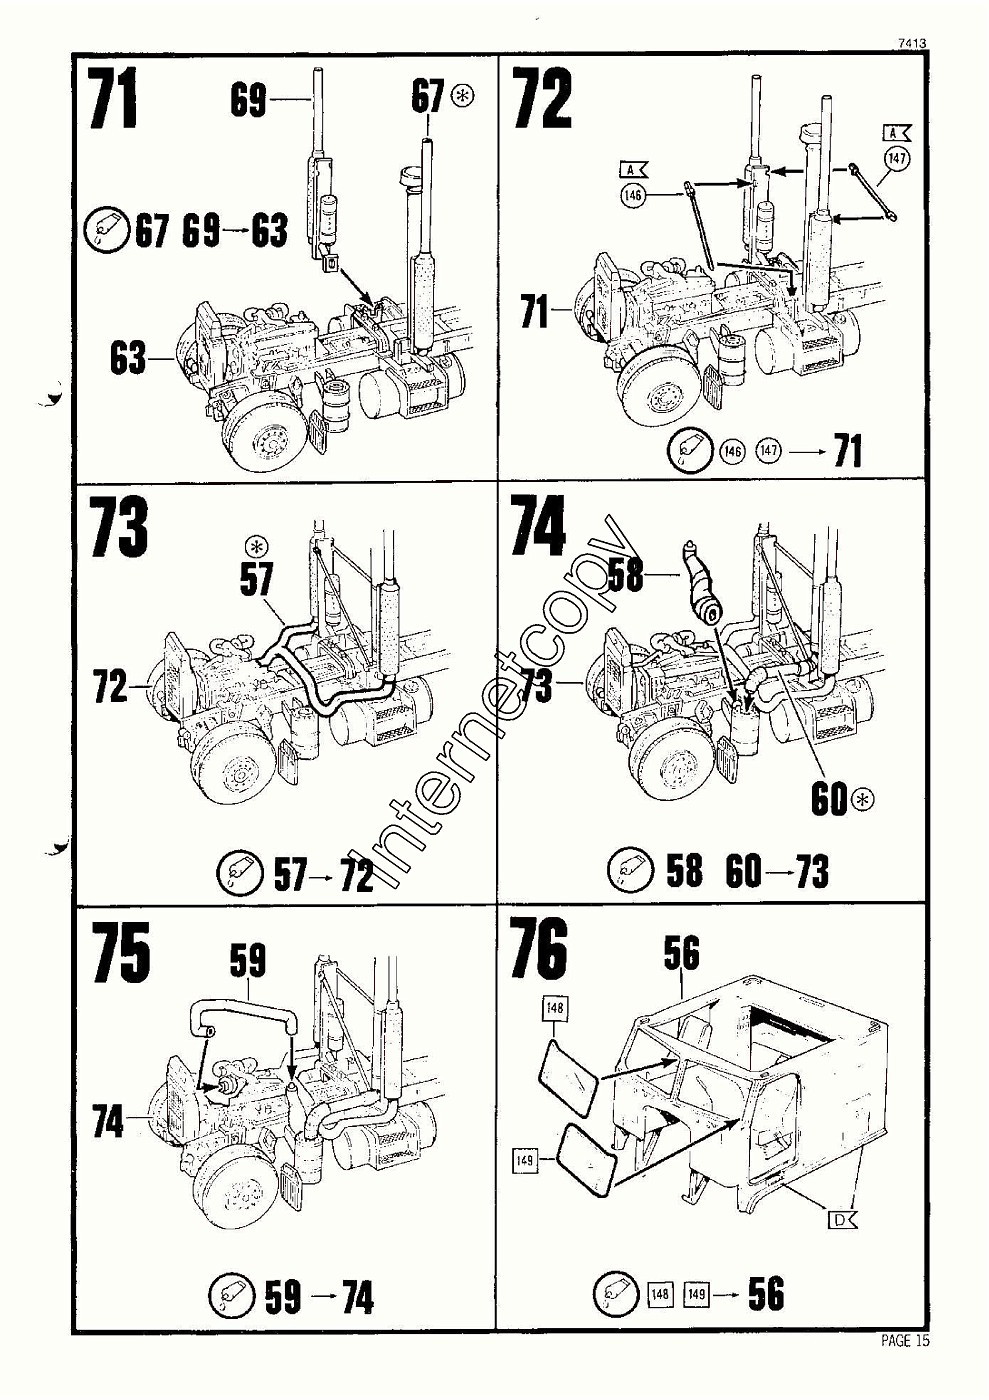 4gpyw Ford Sterling Dump Truck 08 Sterling Will Not Build Air Pressure besides 07413 Kenwor  K 100 015 likewise 1993 Kenworth T600 Wiring Diagrams as well  furthermore Cabmate. on kenworth k100